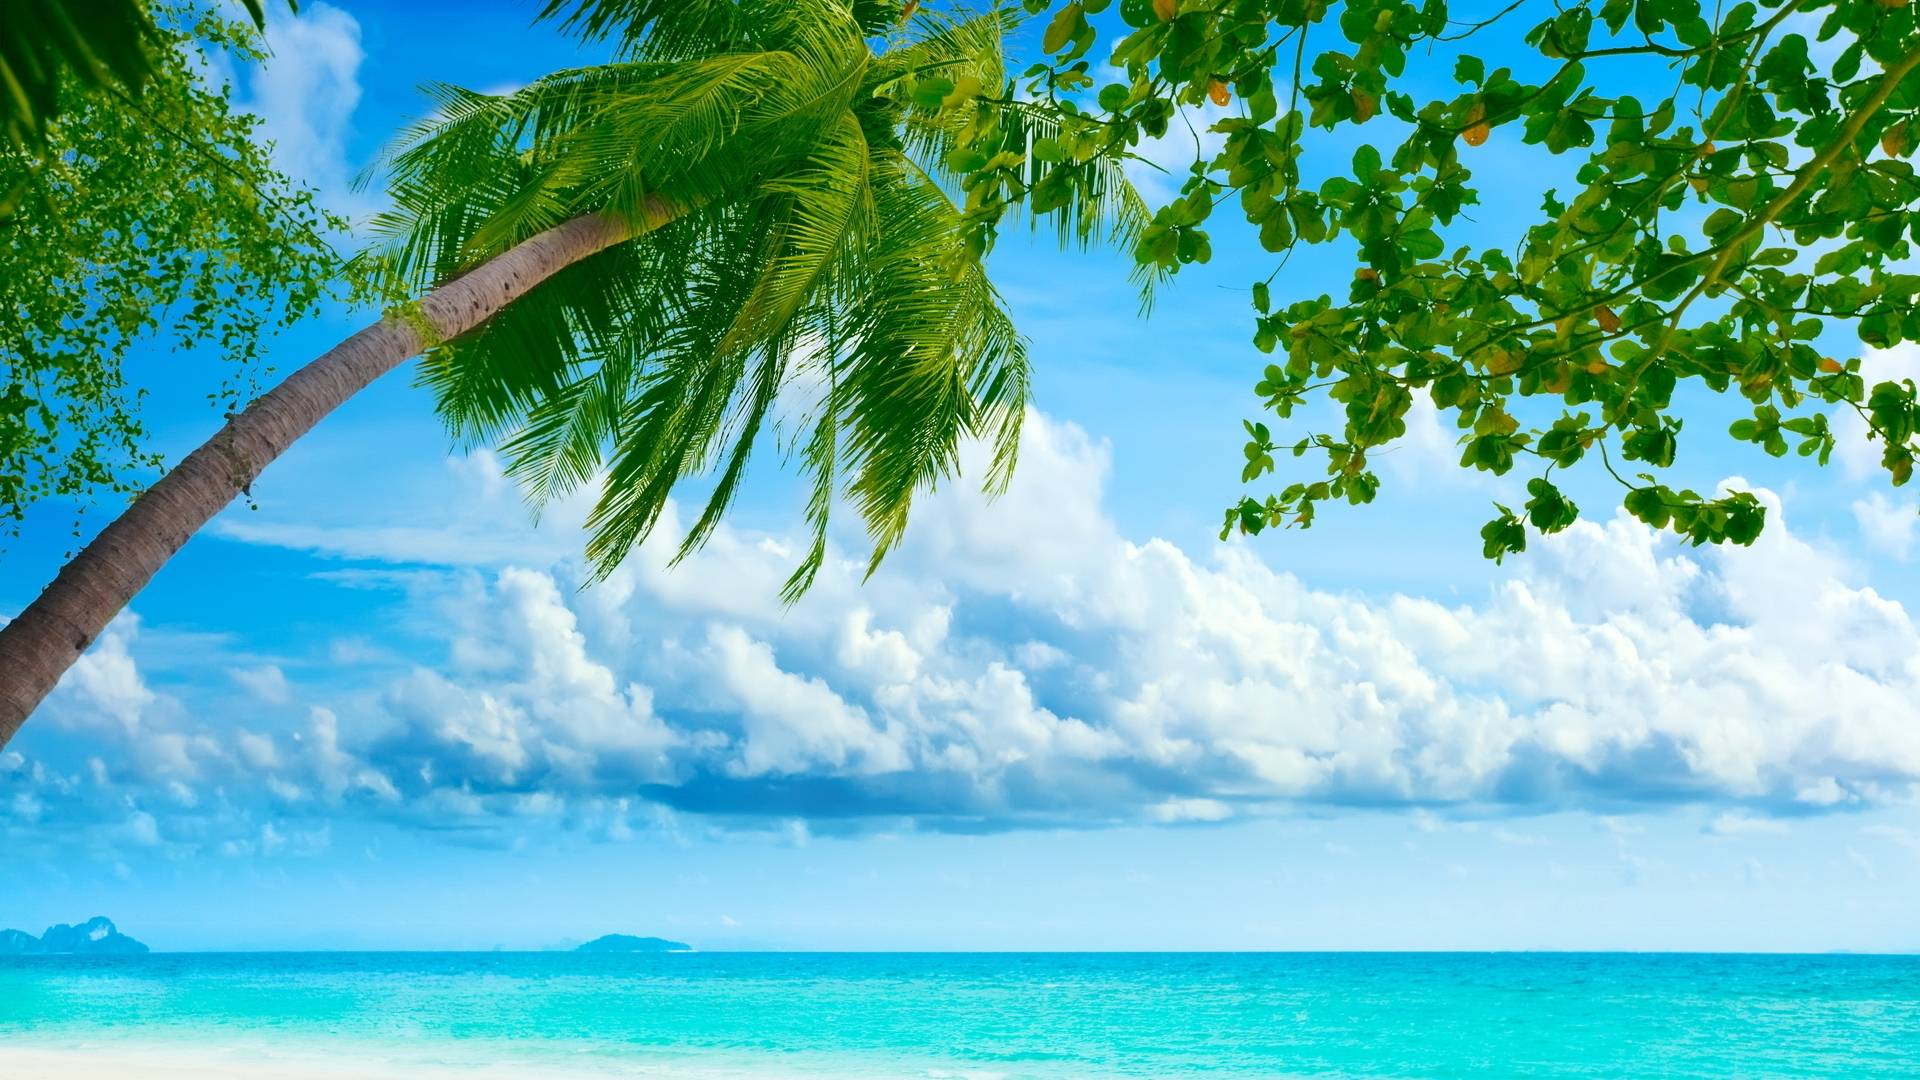 Exotic Summer Day Wallpaper Summer HD Widescreen Wallpapers 1920 1080 1920x1080